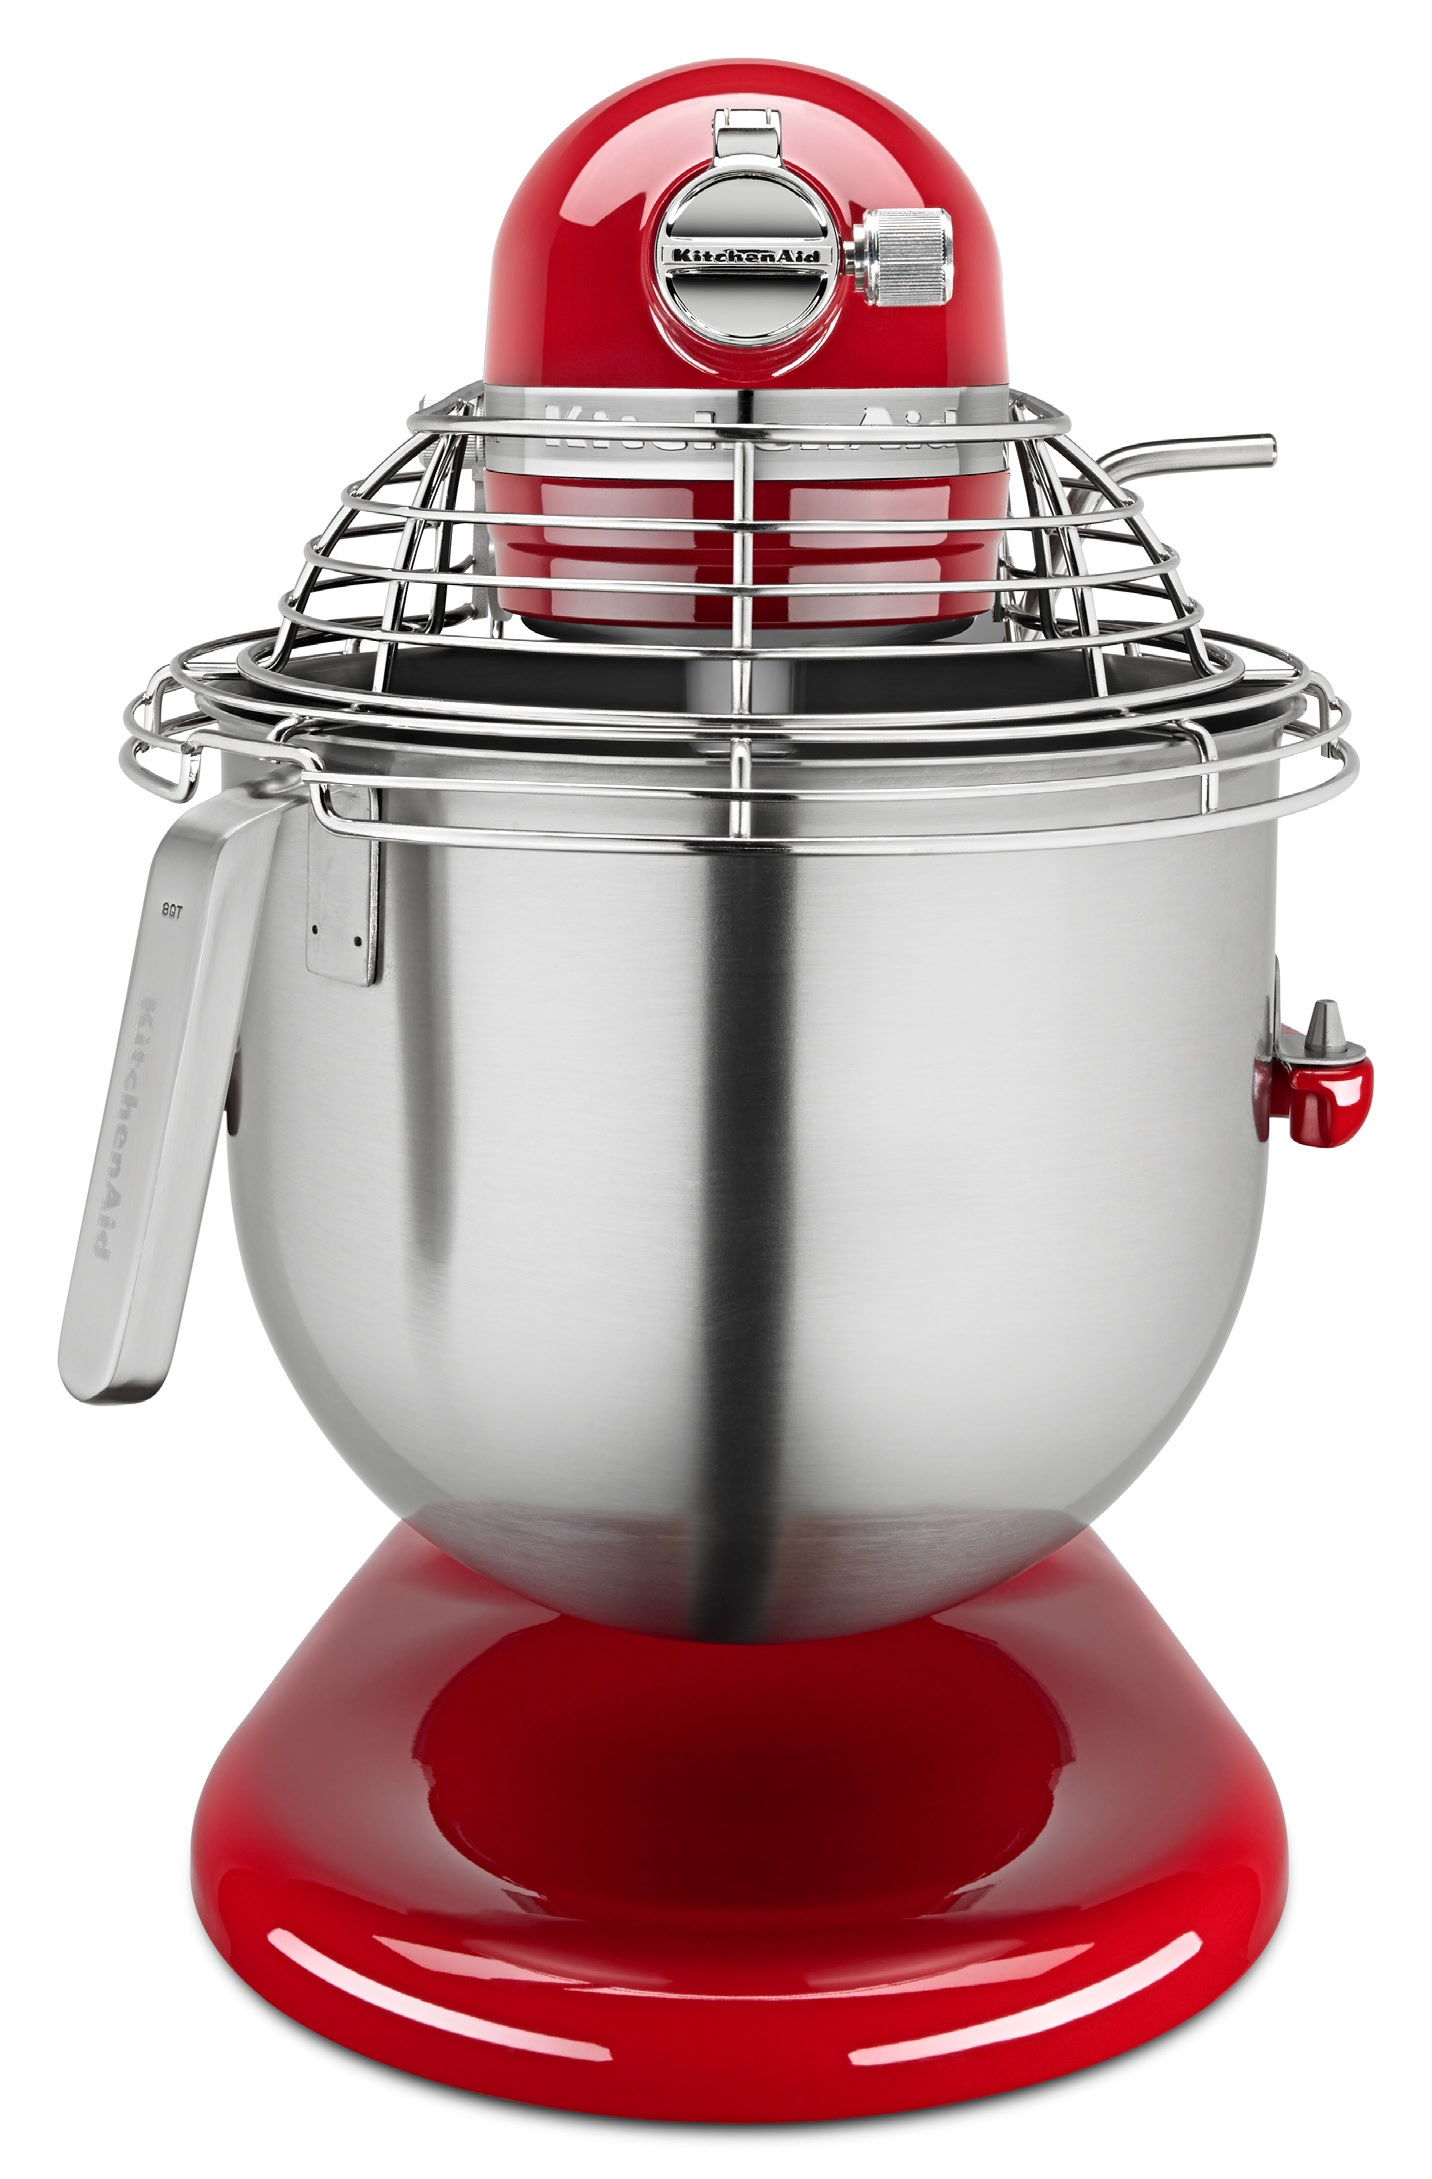 Kitchenaid Commercial Mixer Nz - Kitchen Design